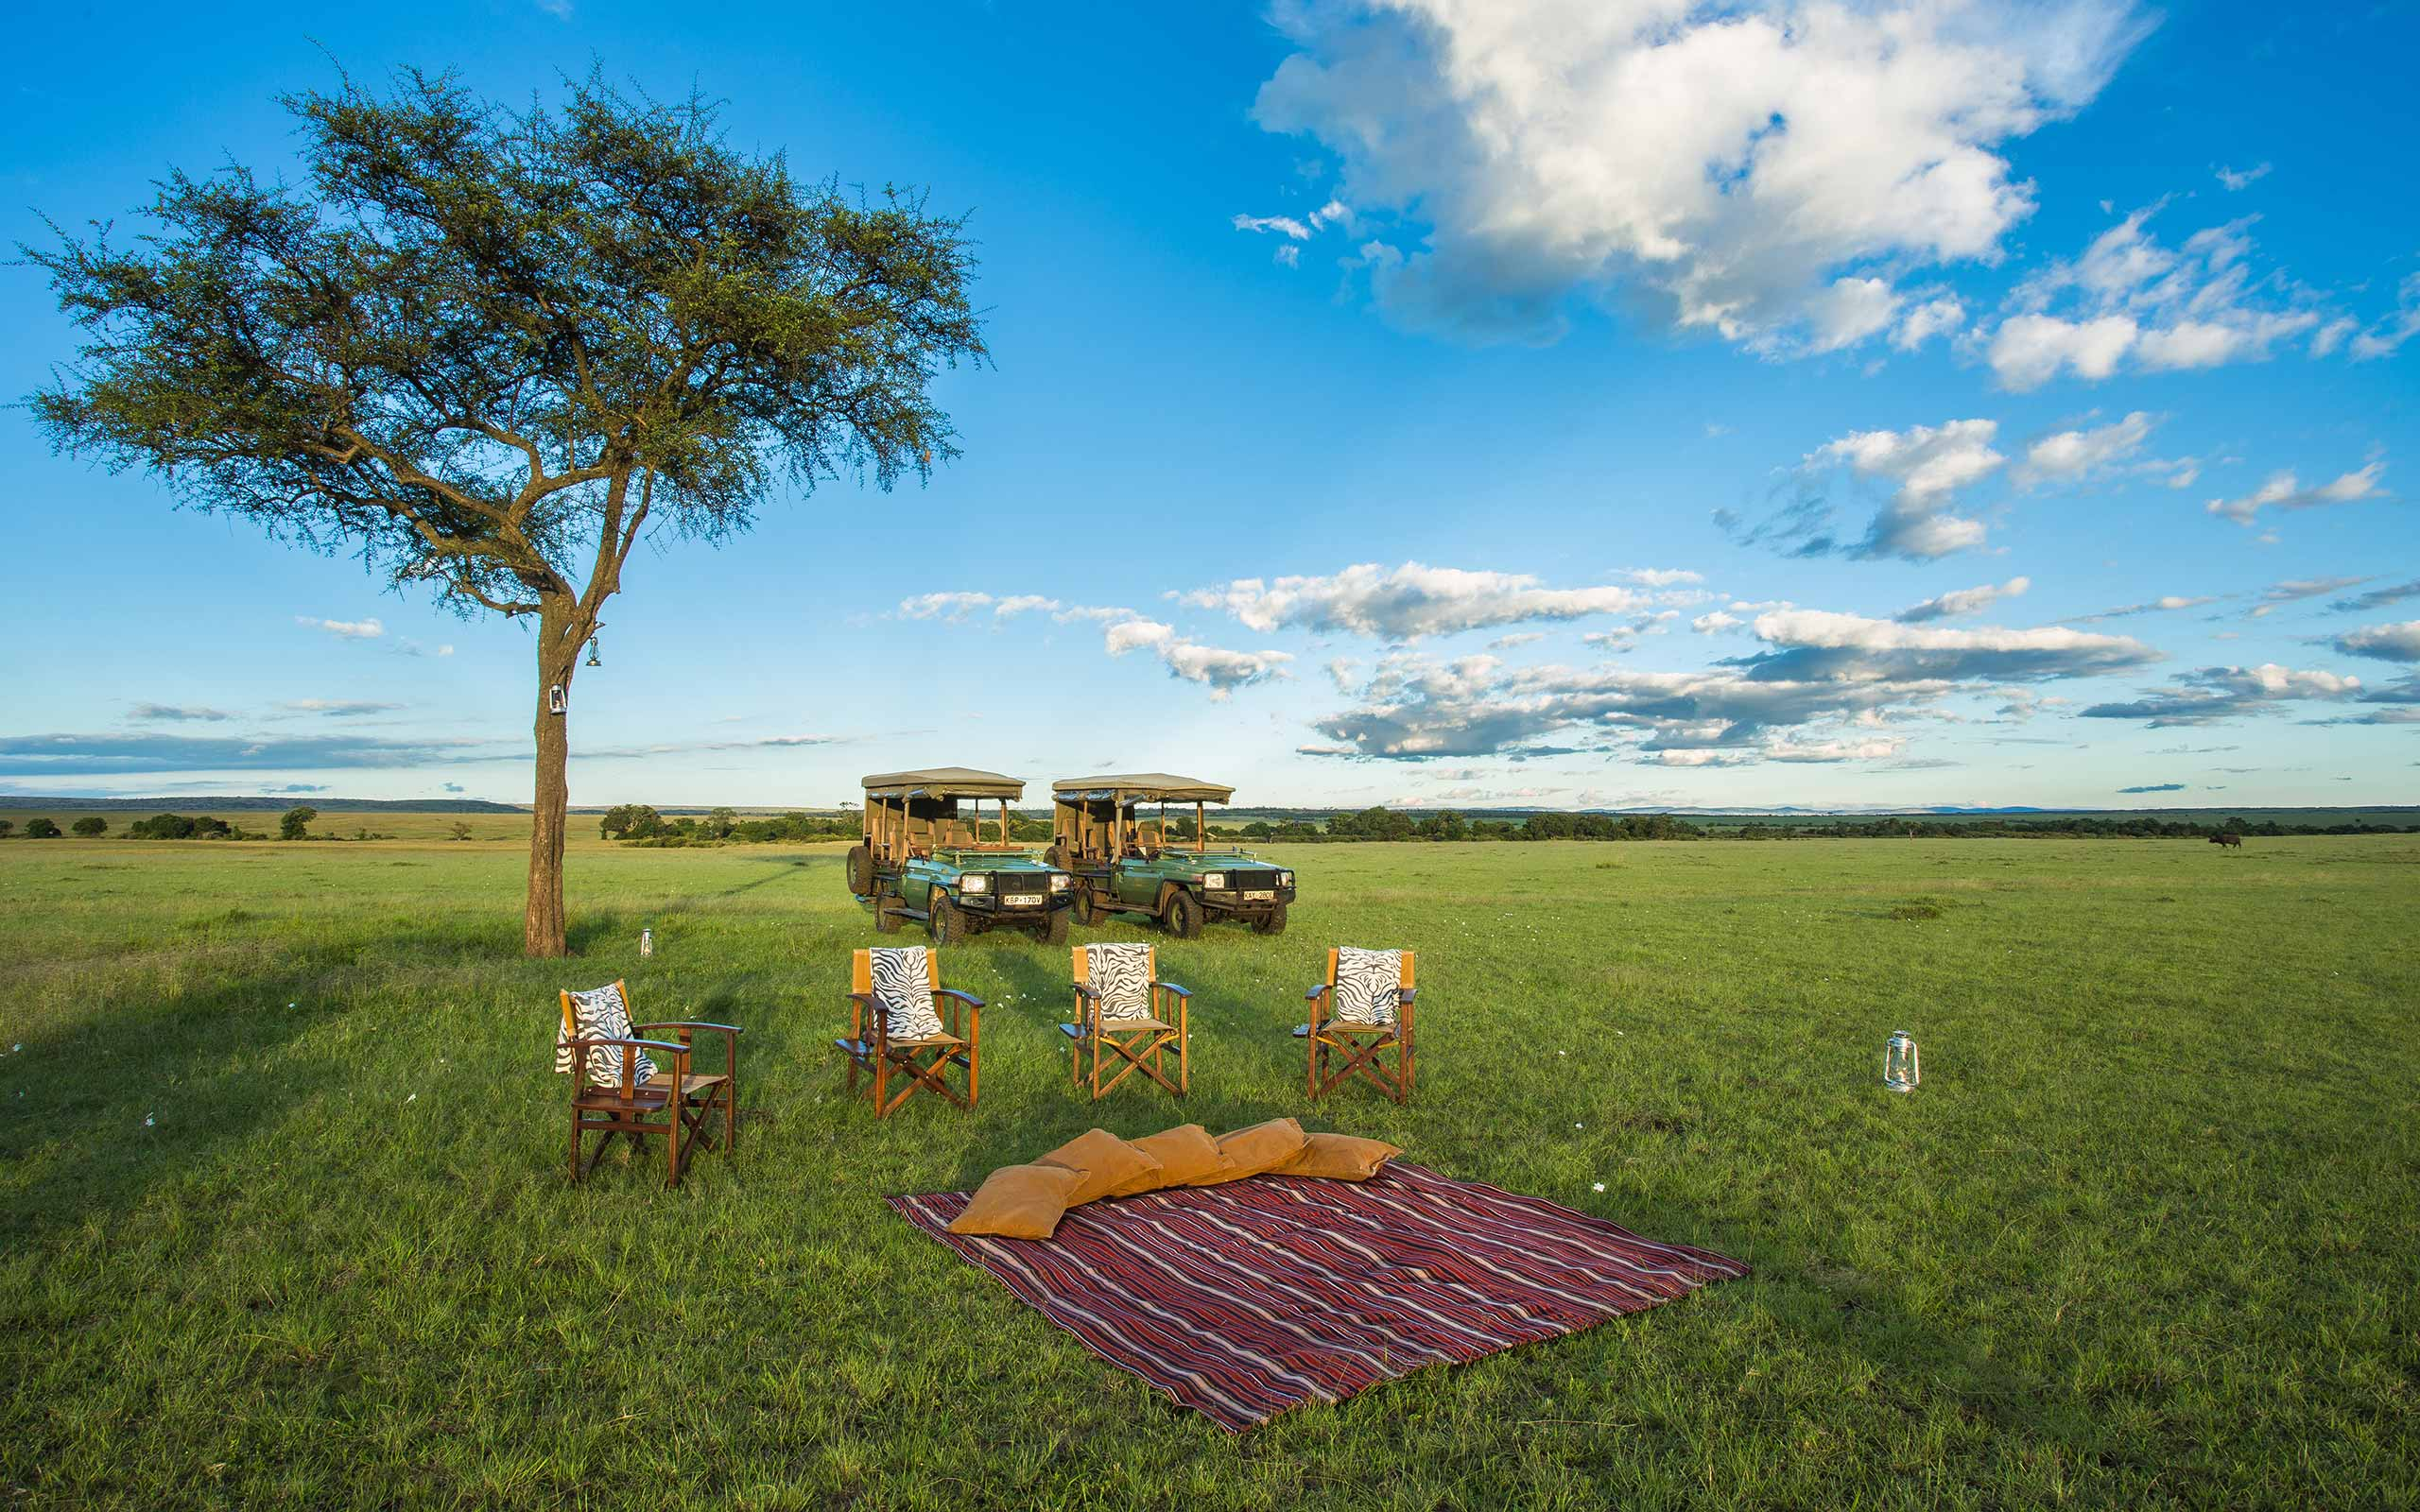 enkosi-africa-safari-kenya-masai-mara-great-plains-conservation-conservancy-picnic